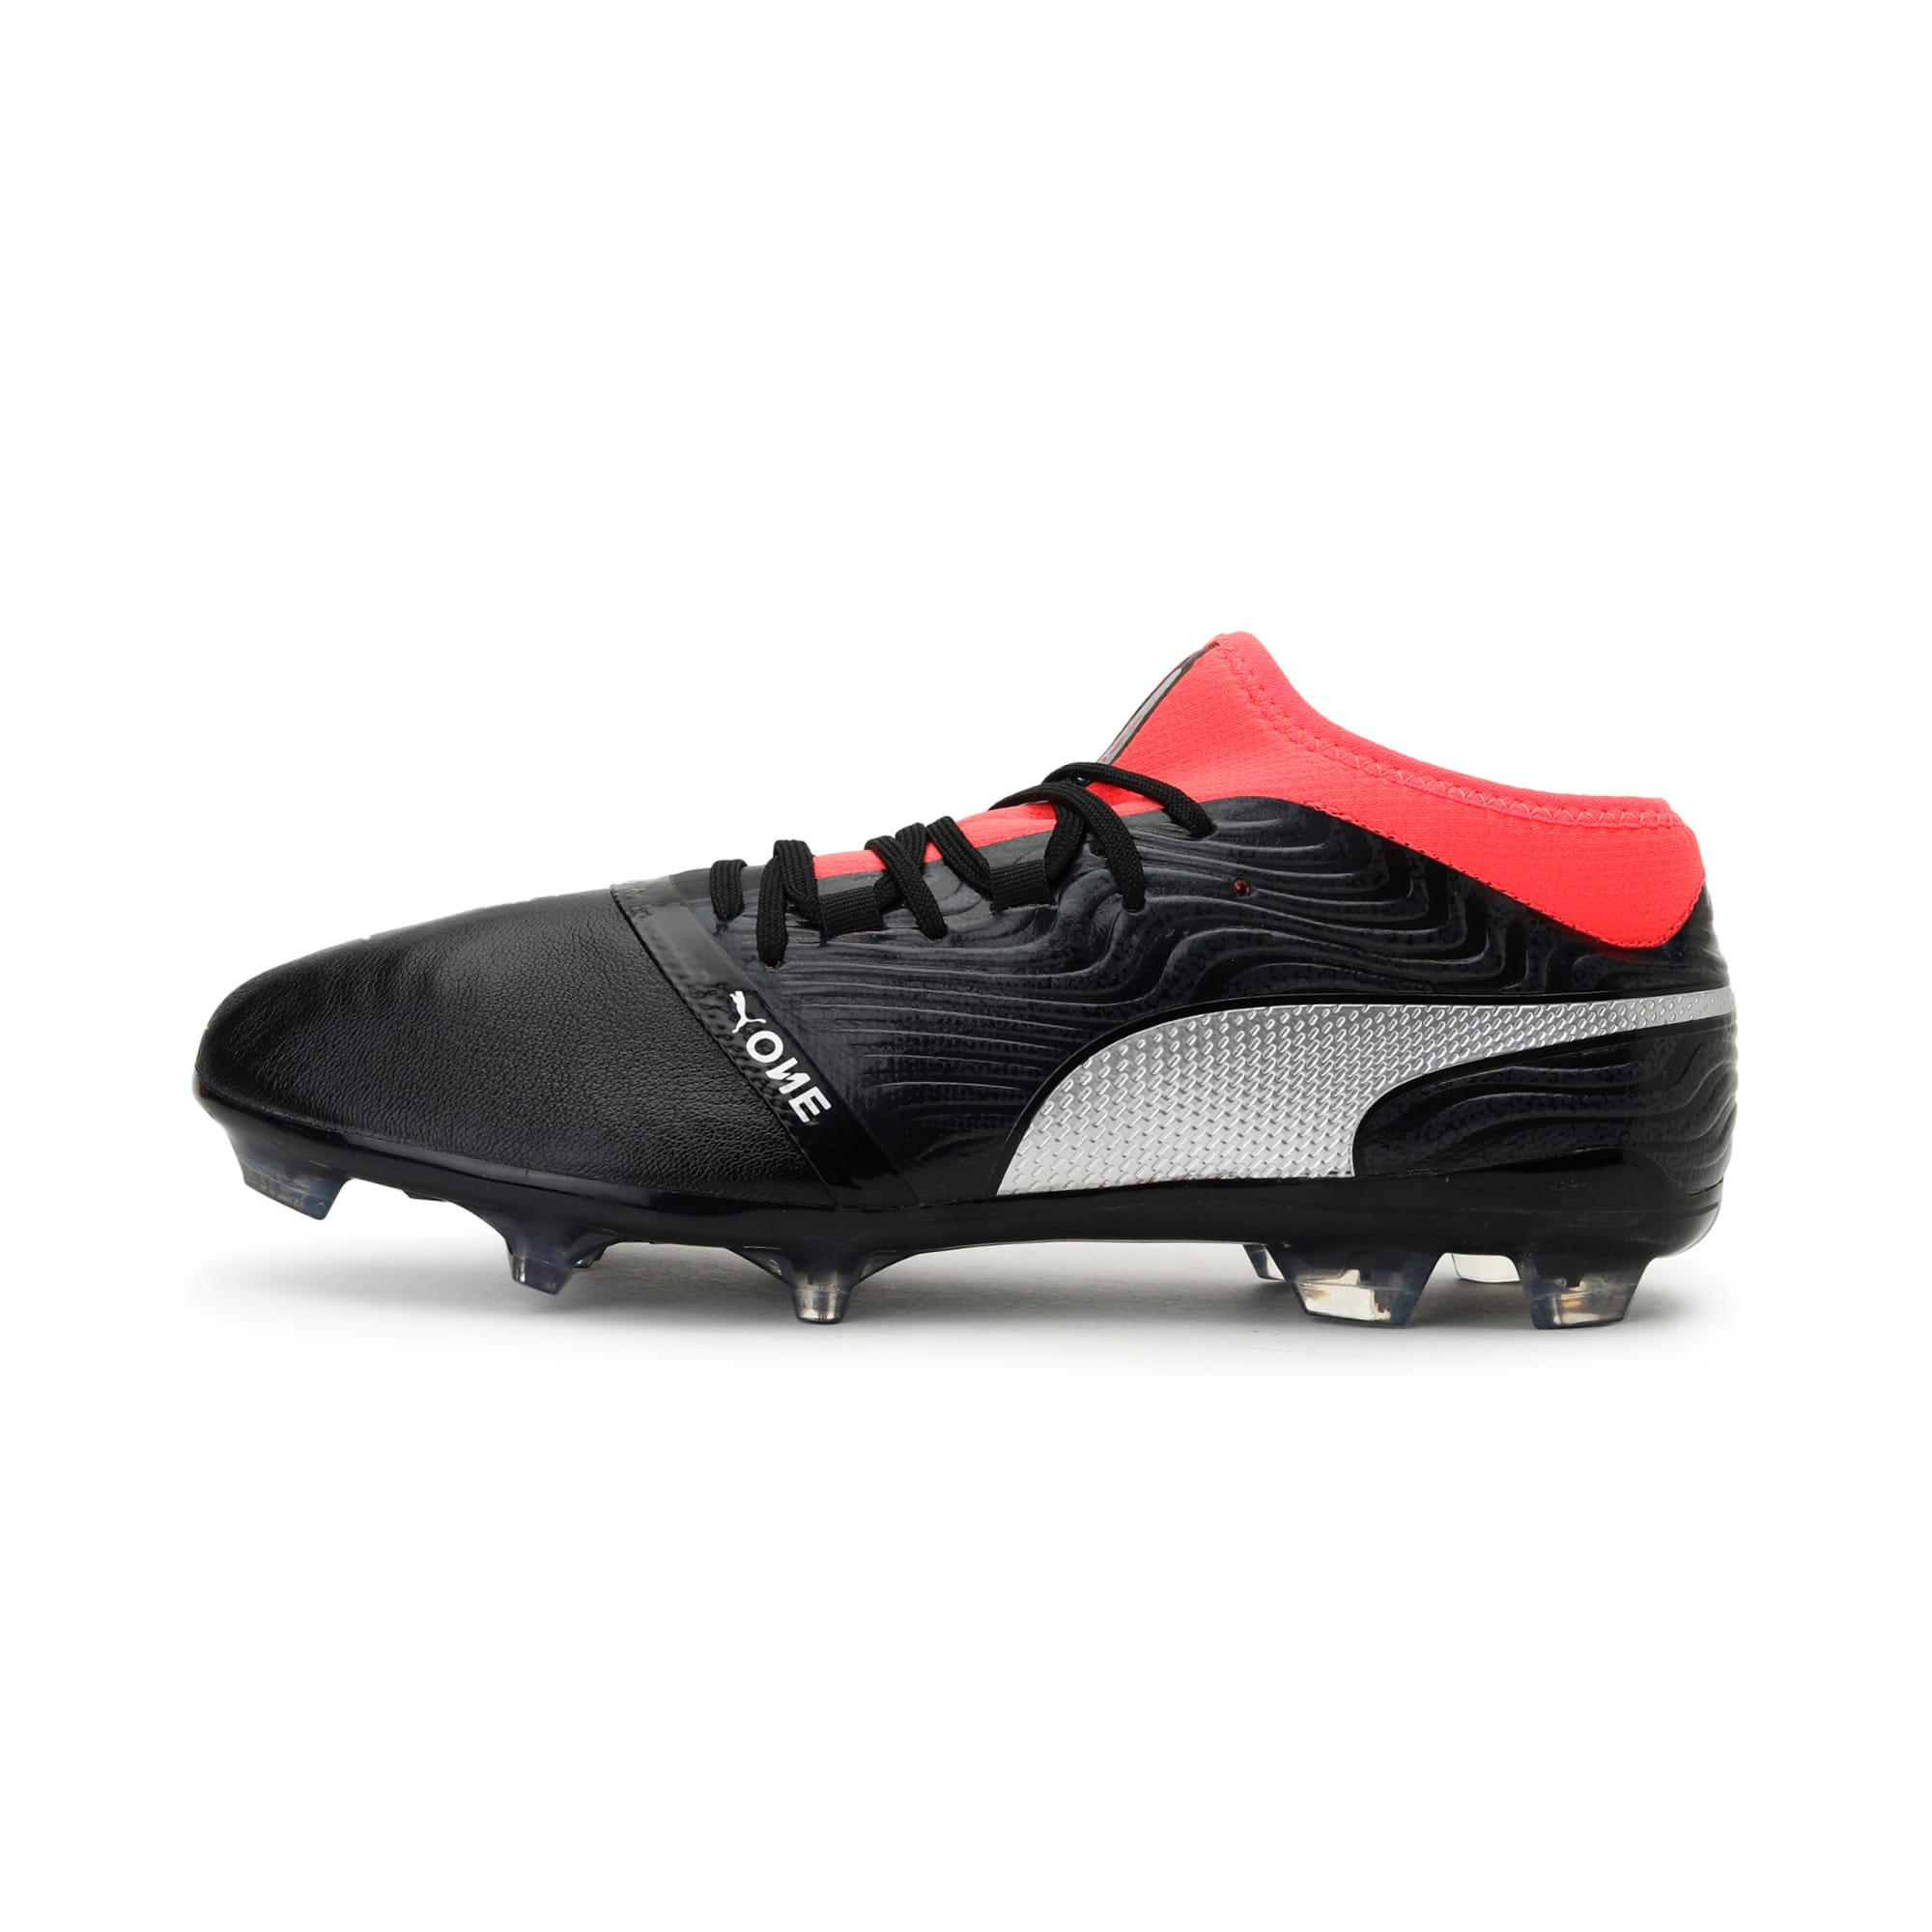 Thumbnail 1 of ONE 18.2 FG Men's Football Boots, Black-Silver-Red, medium-IND